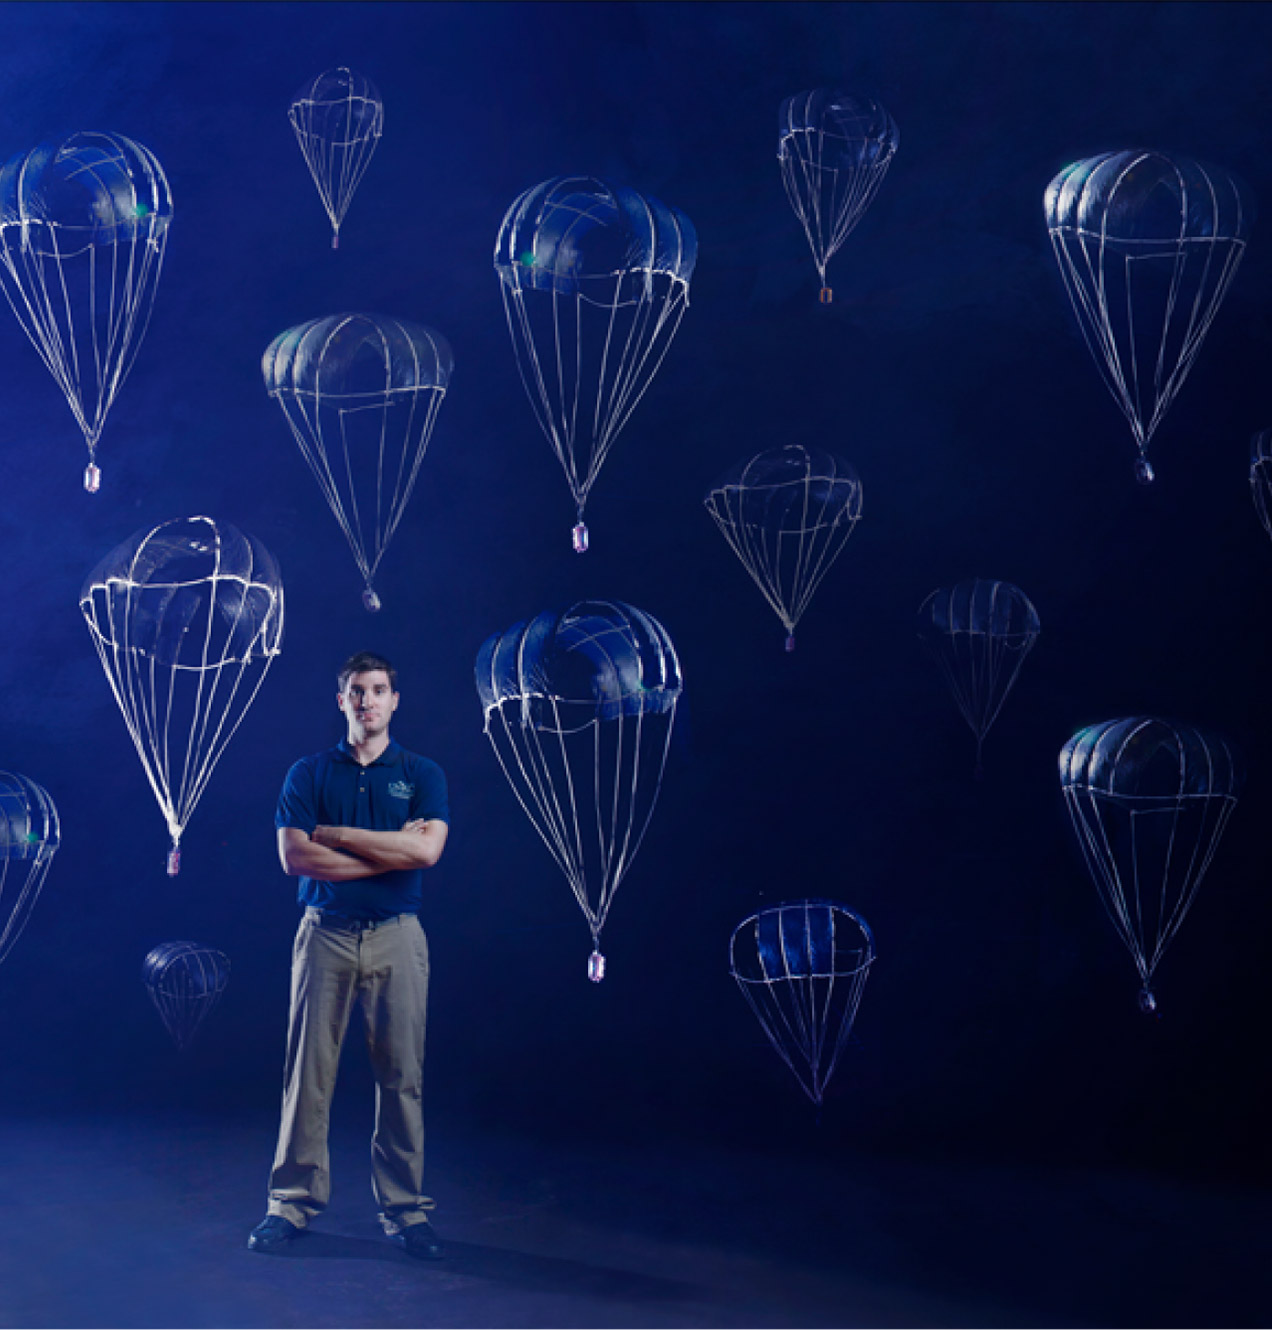 Researcher (presenting as white male) stands with arms crossed in front of dark background with white parachutes dropping items